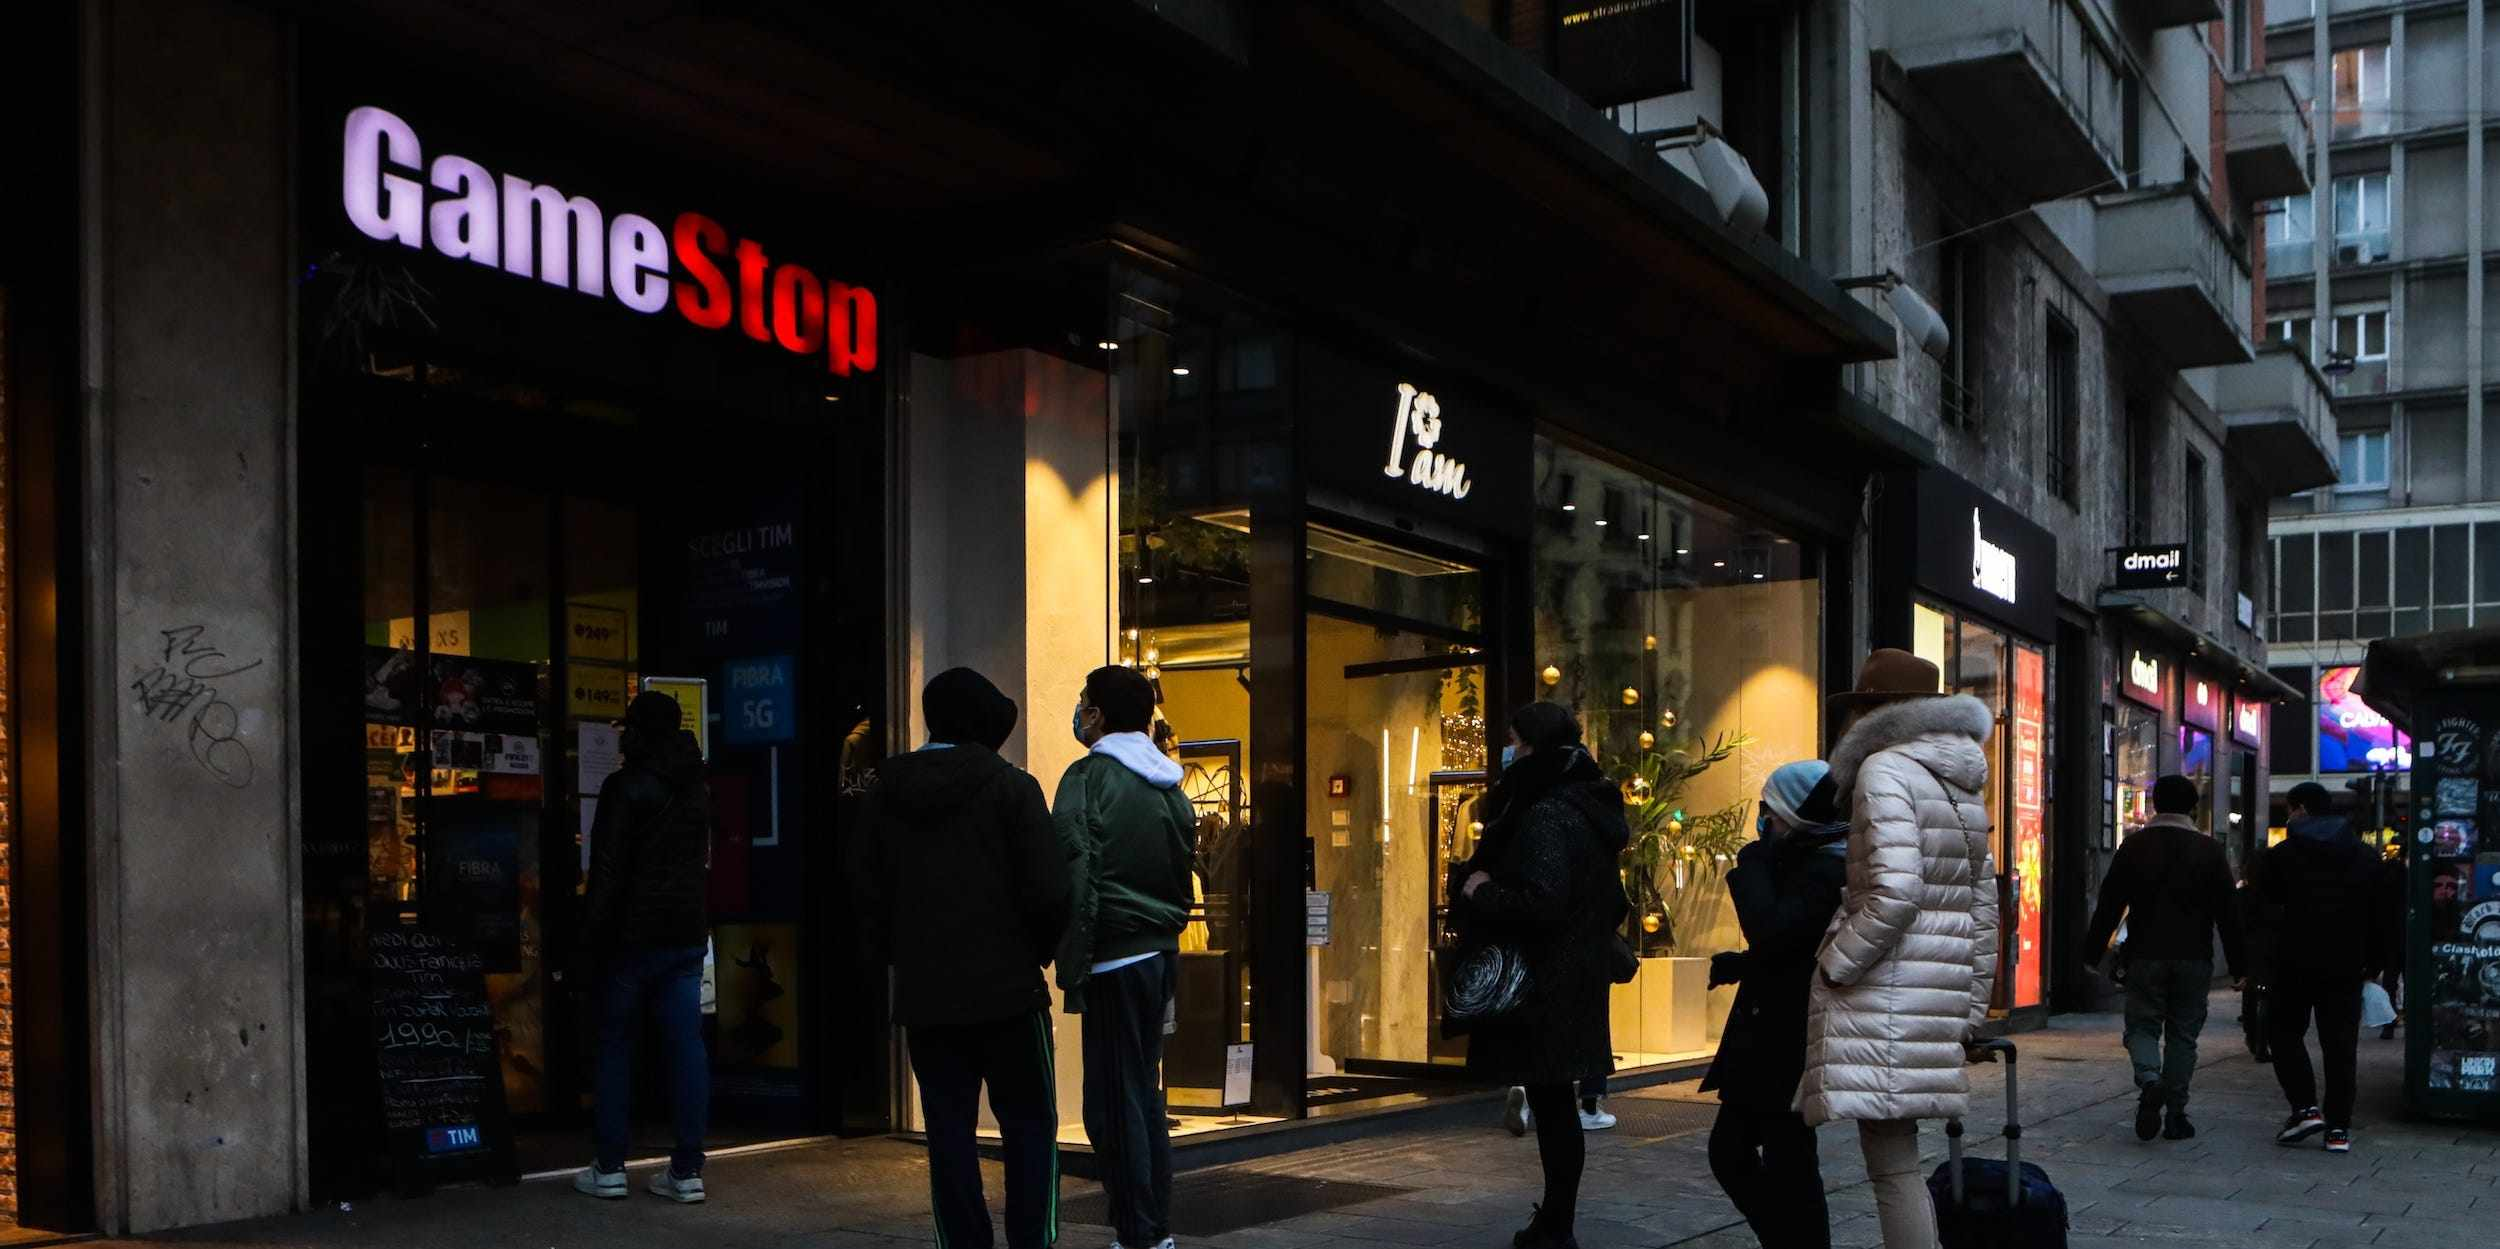 gamestop short squeeze charges board